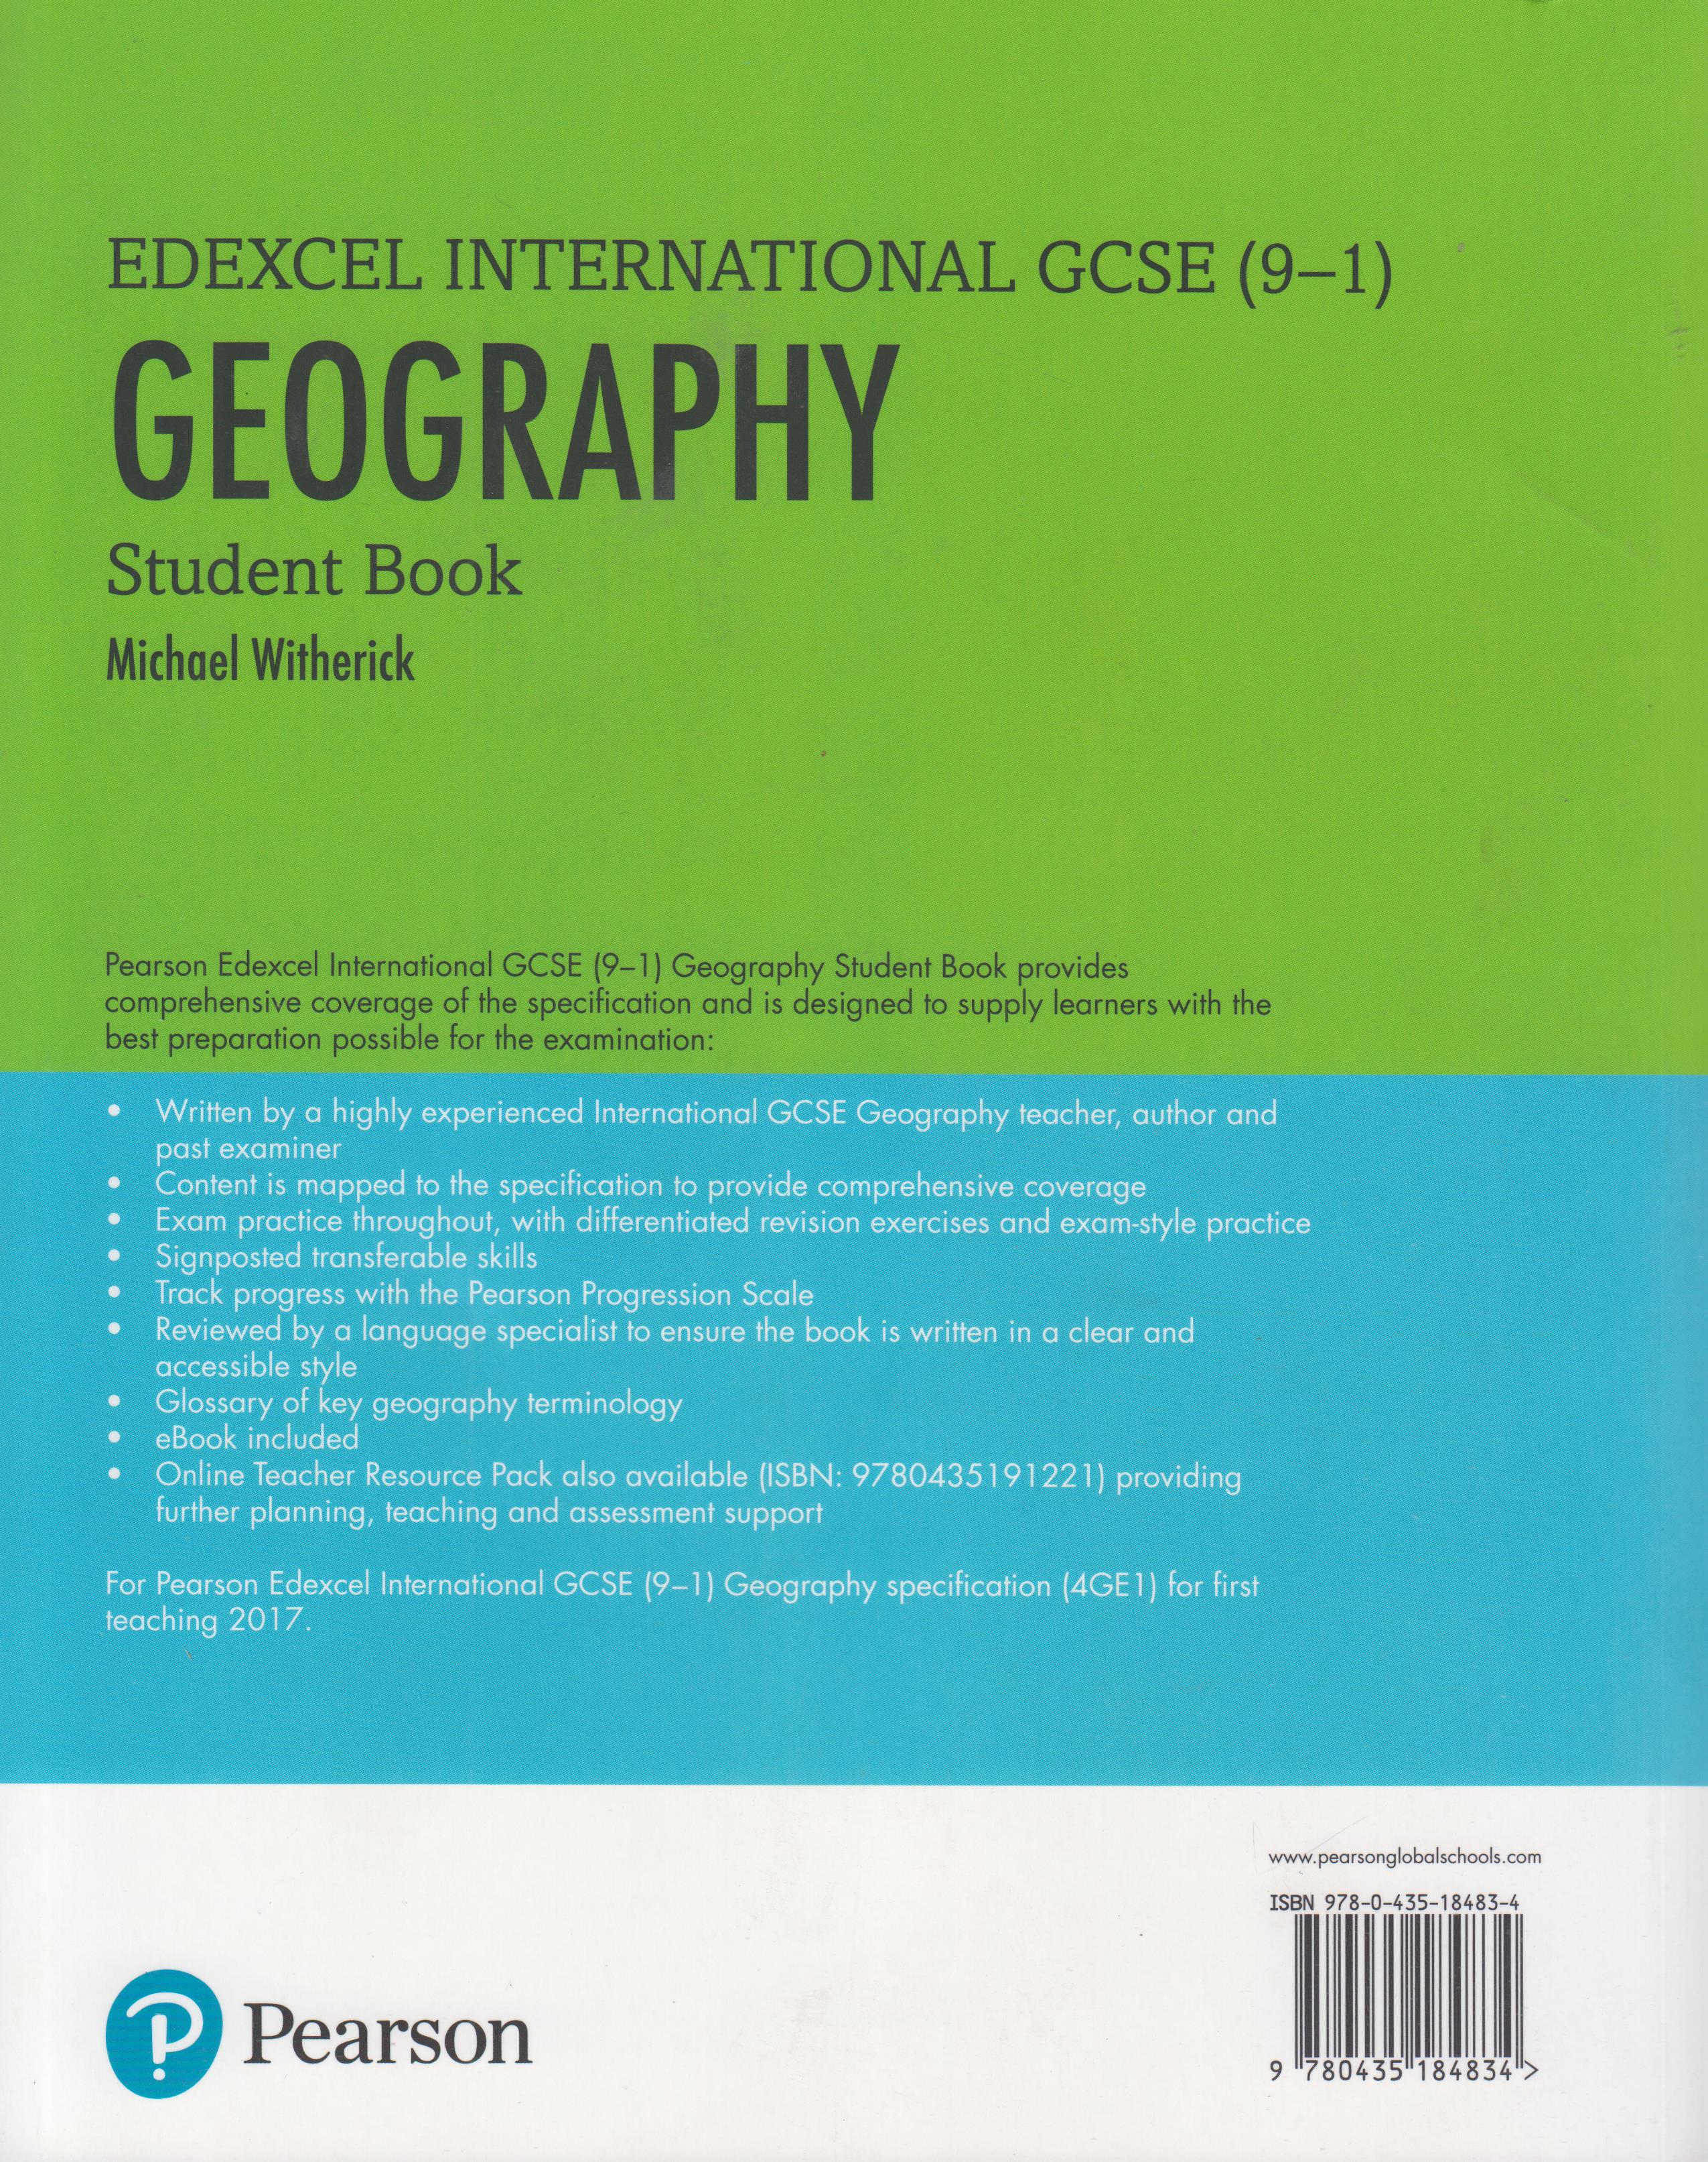 Edexcel International GCSE (9-1) Geography Student Book | Books,  Stationery, Computers, Laptops and more  Buy online and get free delivery  on orders